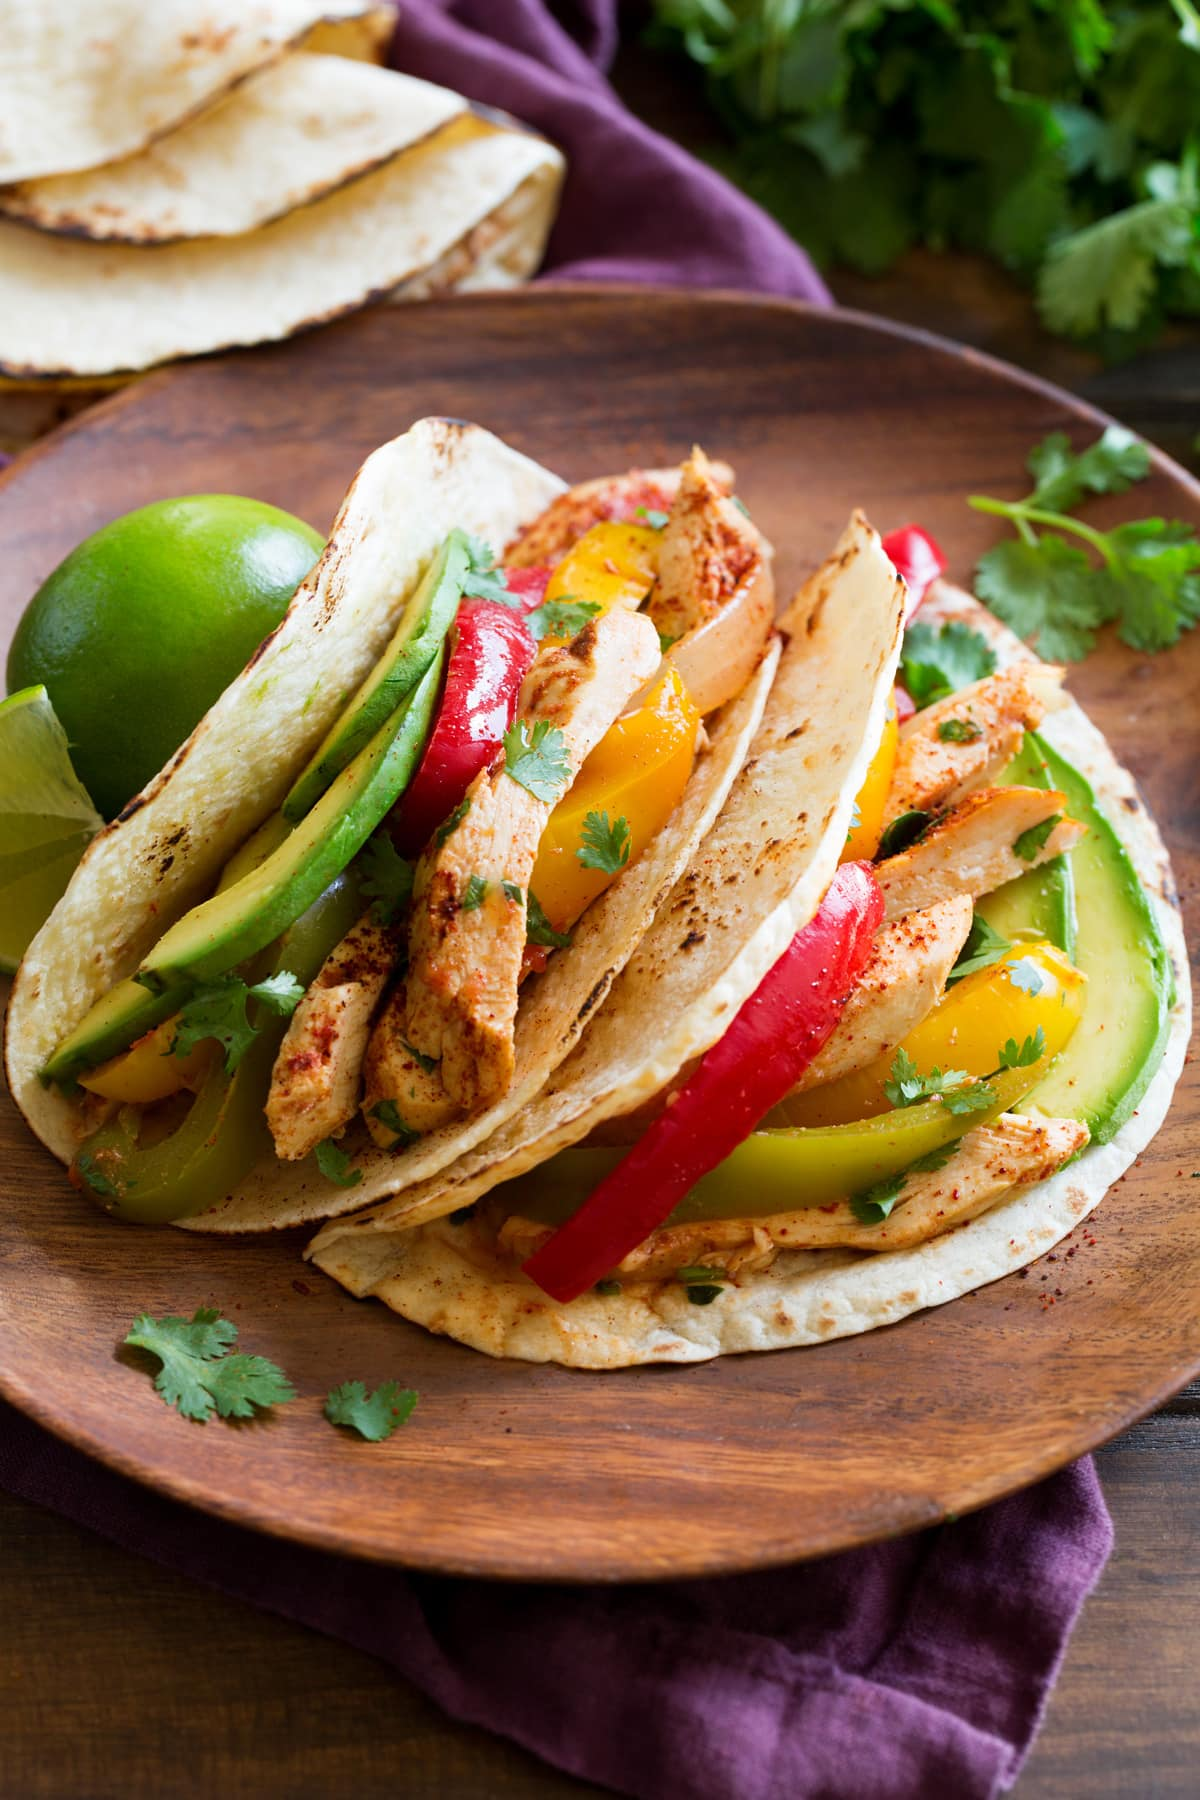 Two chicken fajitas on a wooden plate.